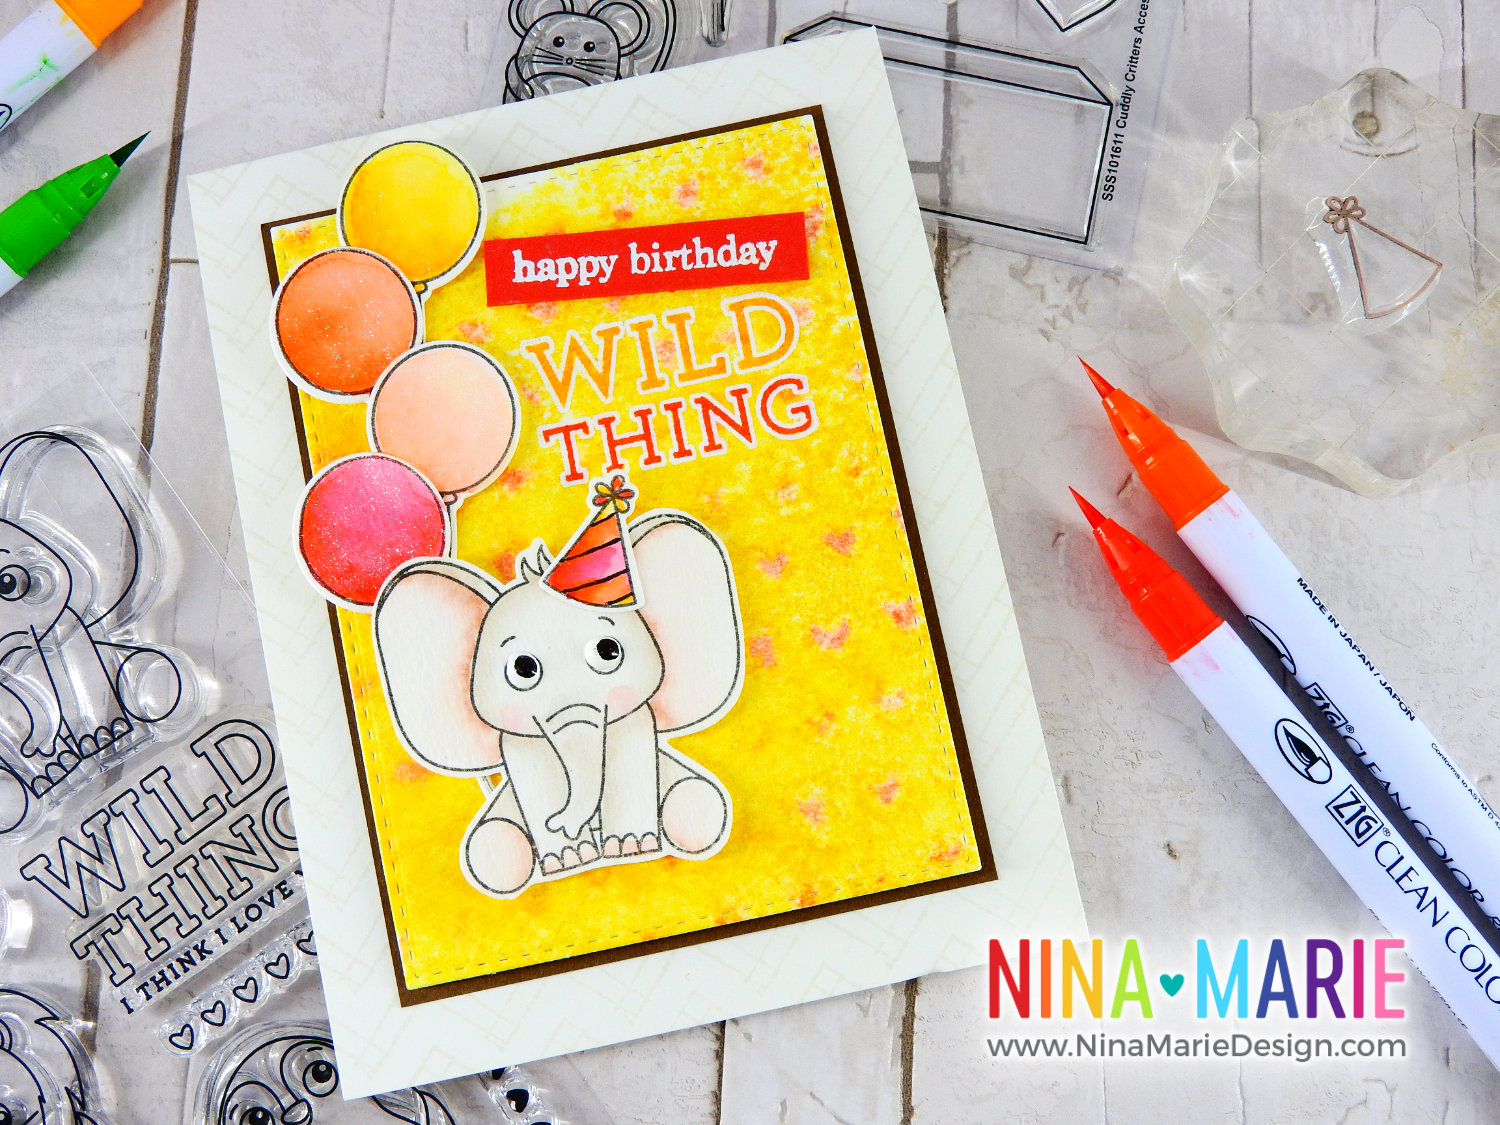 Gel Press + Distress Ink | Nina-Marie Design